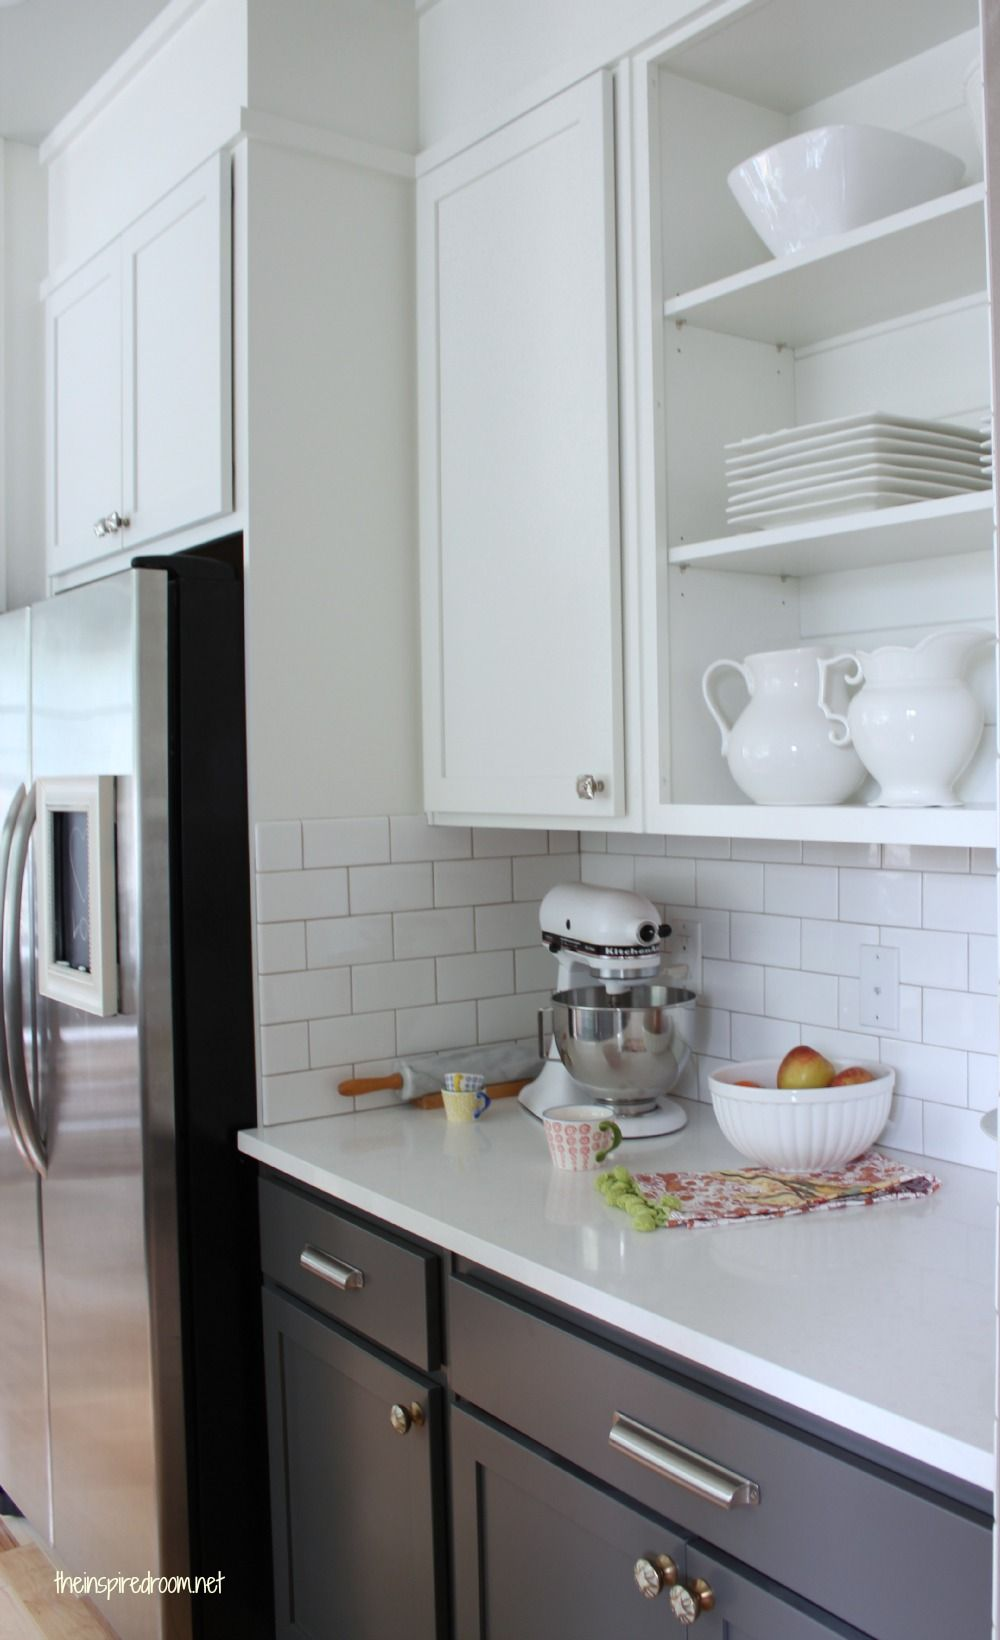 White Kitchen Cupboard Paint Favorite Antique White Paint Subway Tile Backsplash Cabinets